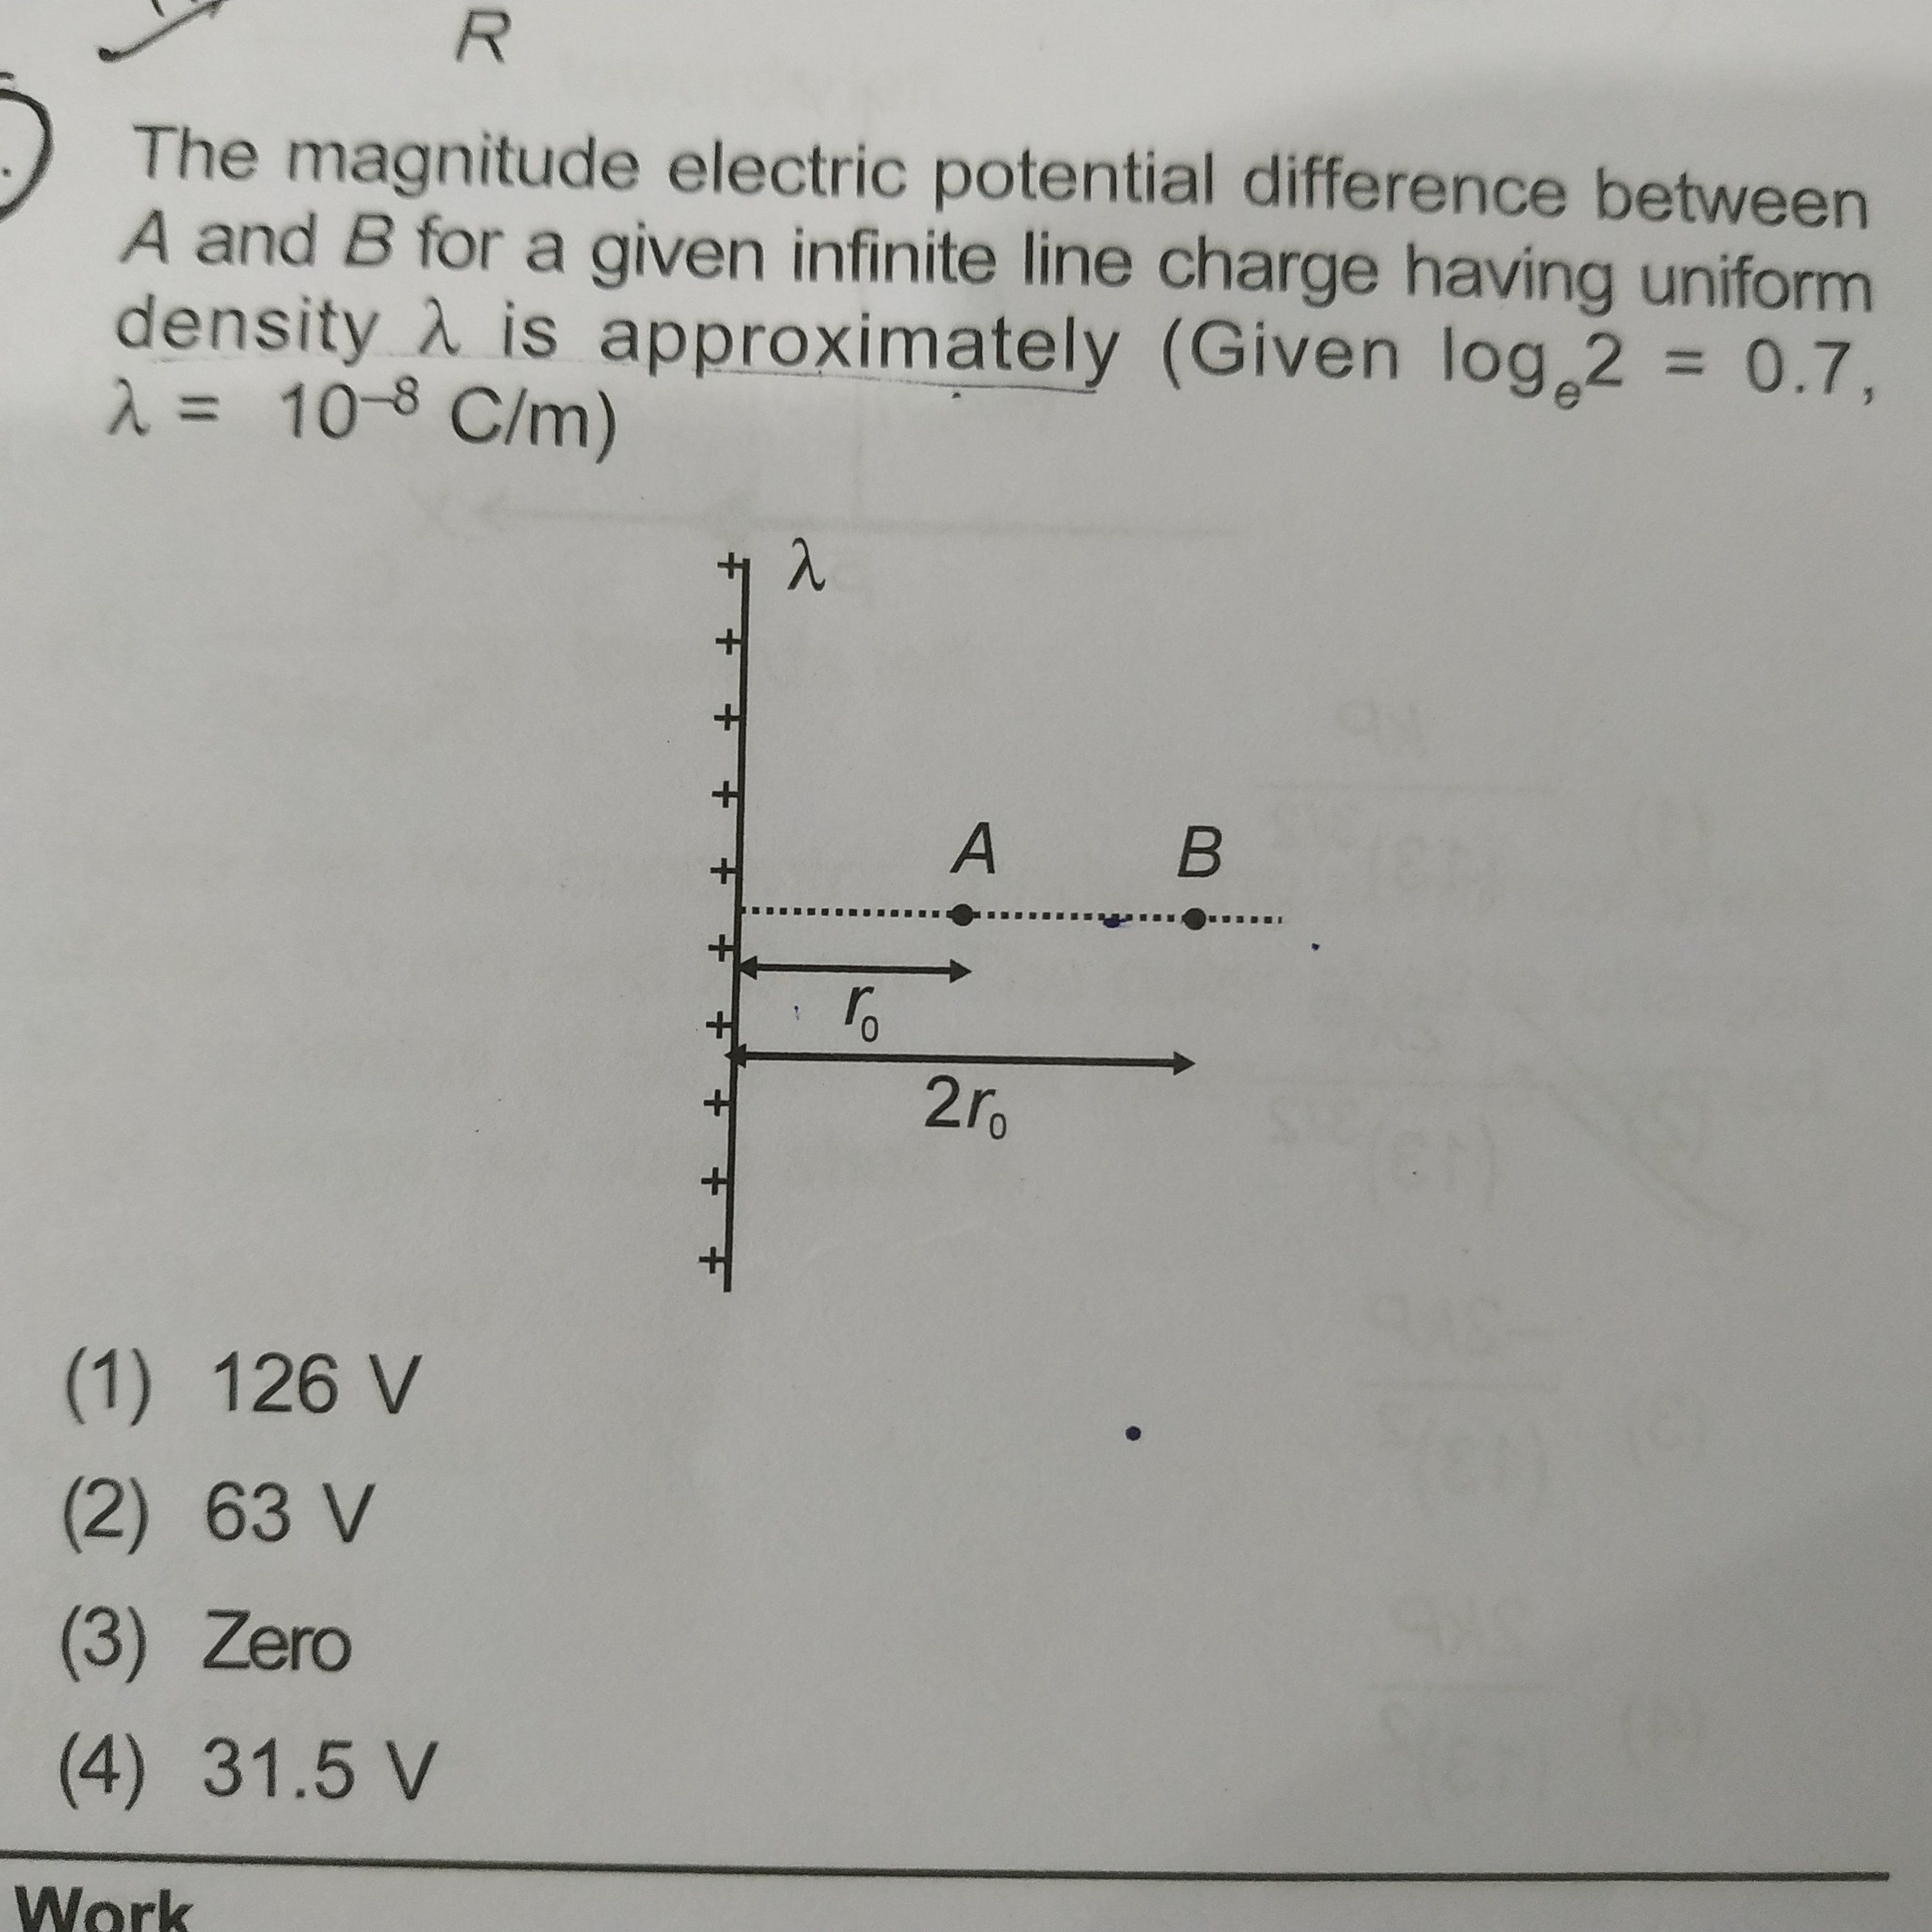 Questions and Answers of CBSE Class 12 Science Physics - TopperLearning